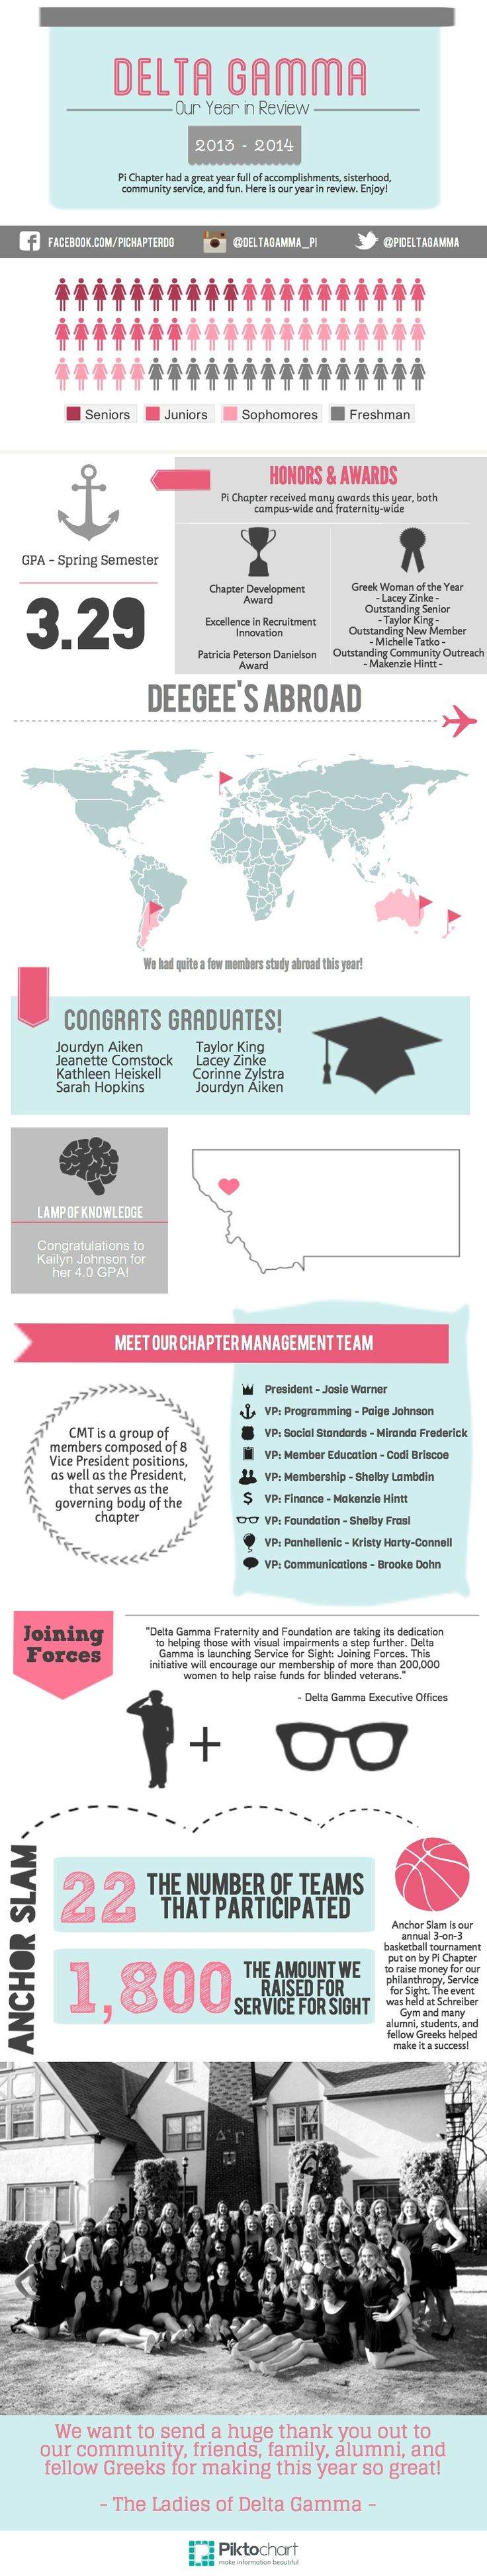 Delta Gamma Our Year in Review